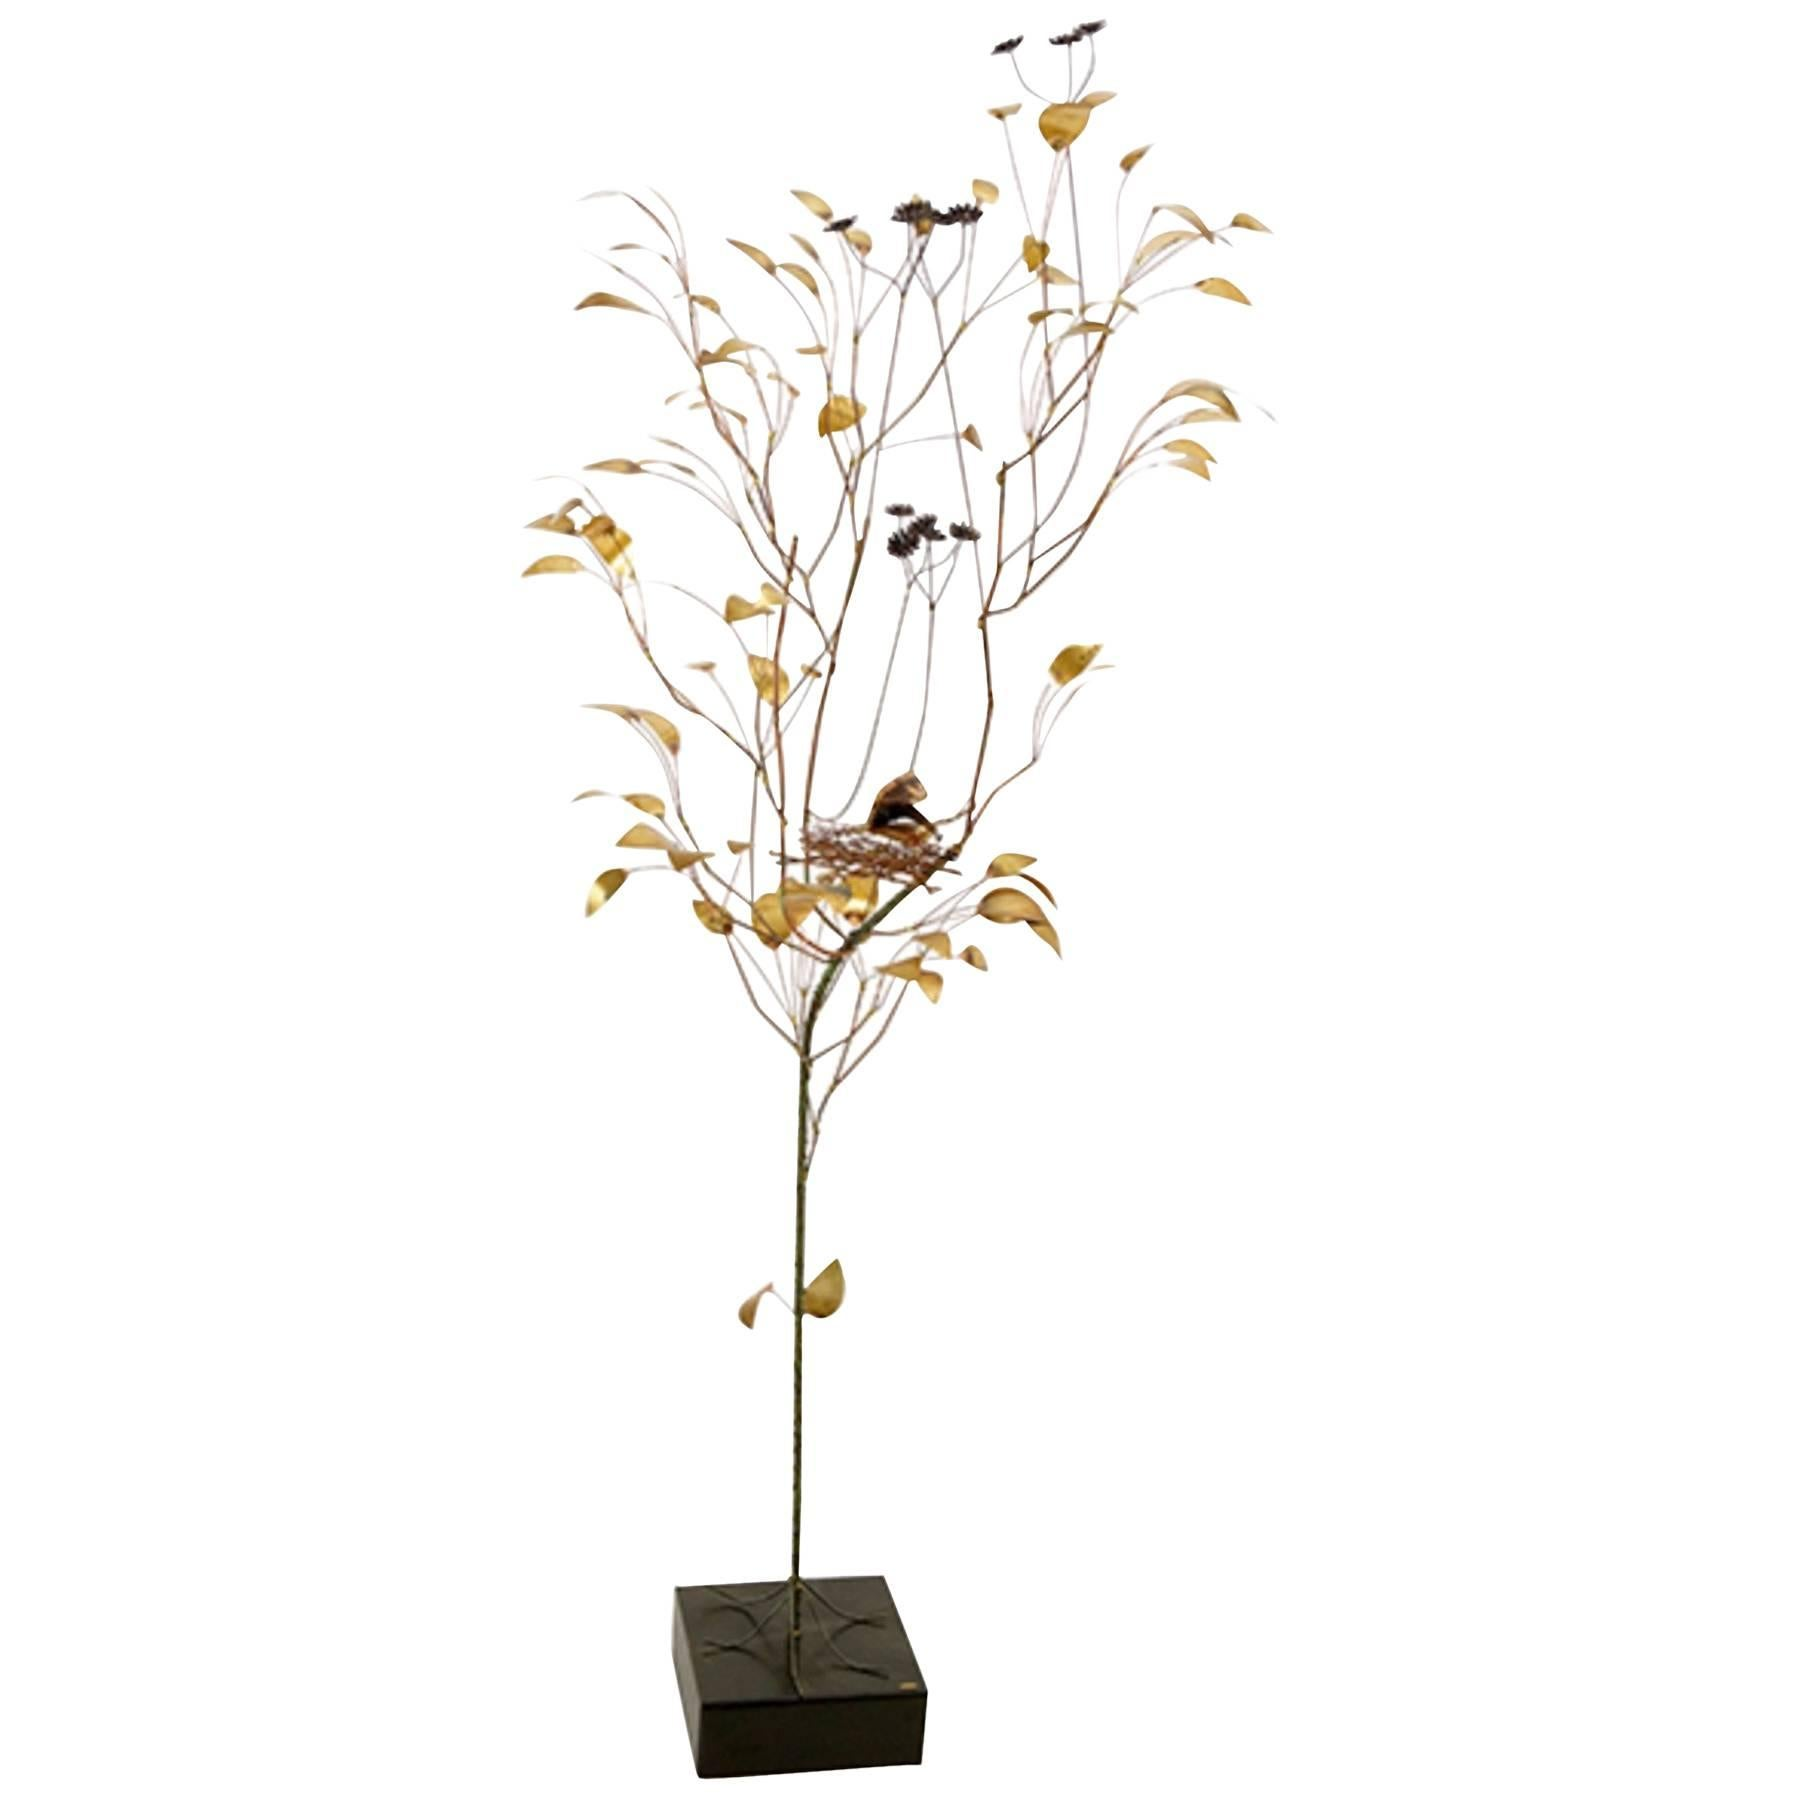 Curtis Jere, Patinated and Welded Brass Tree with a Stylized Birds Nest, Signed